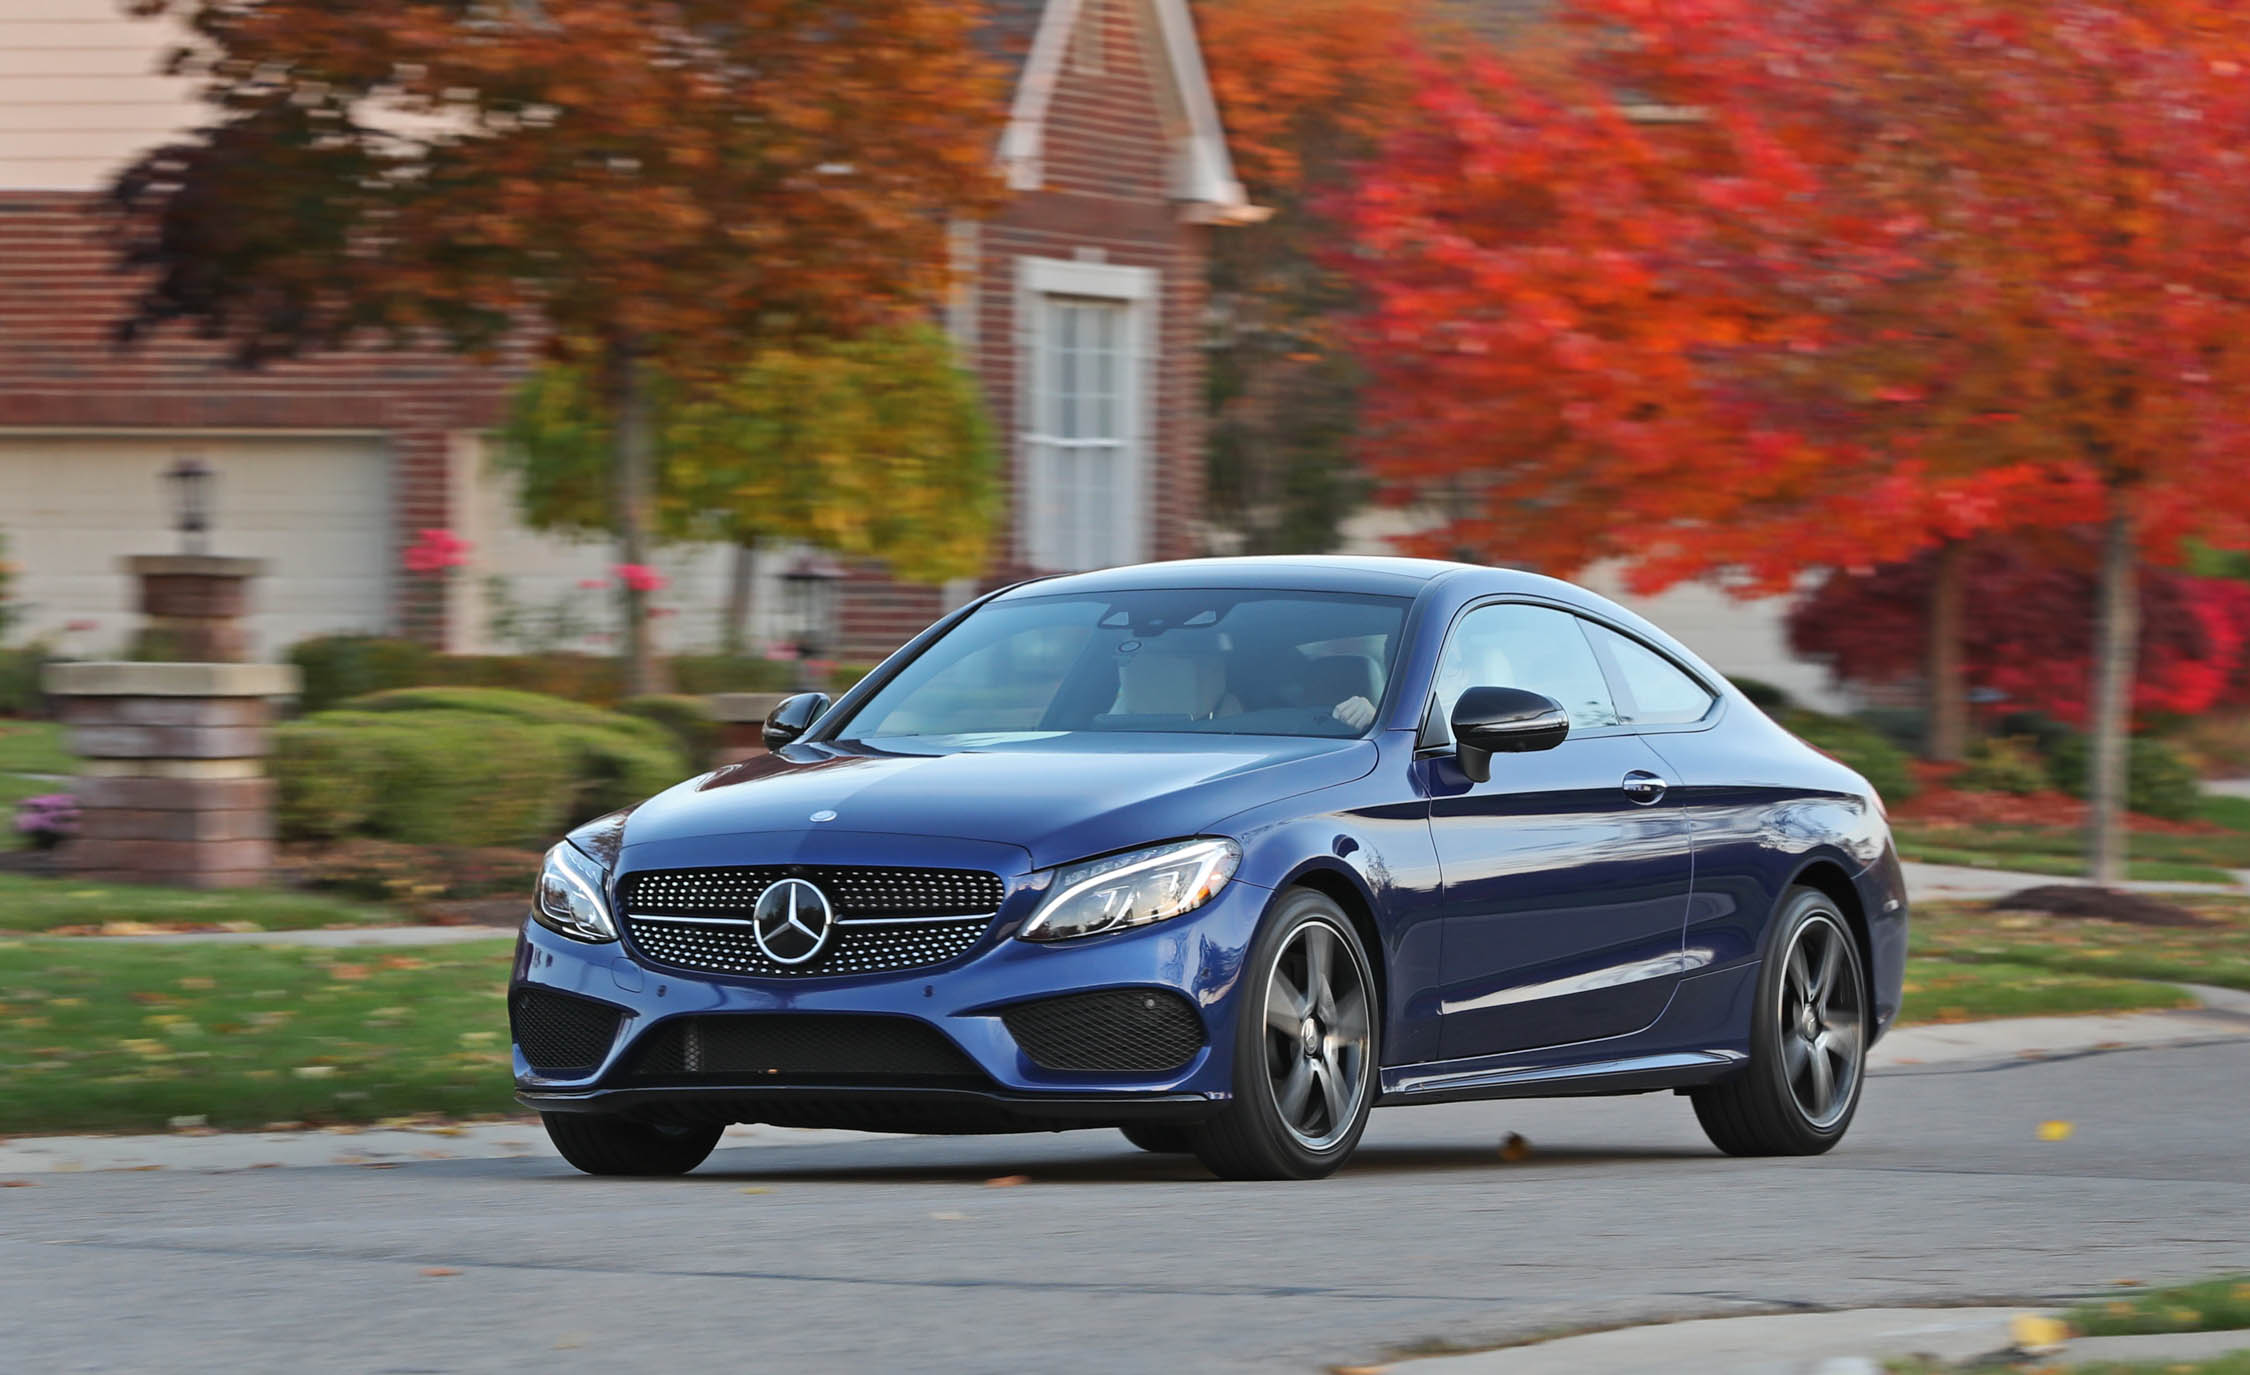 2017 Mercedes Benz C300 4MATIC Coupe Test Drive Blue Color (Photo 36 of 44)